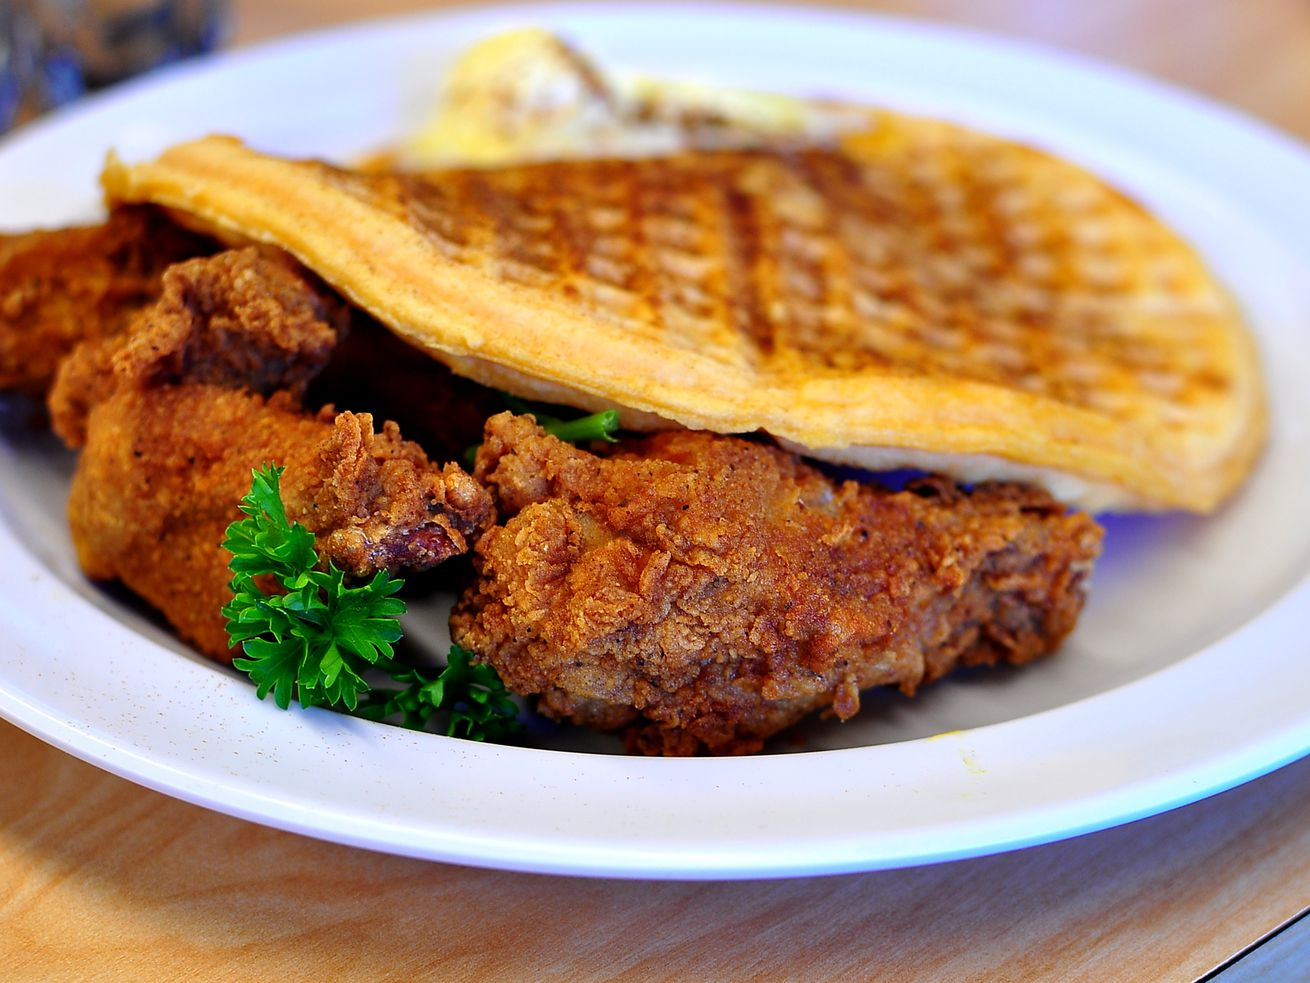 A plate of fried chicken tucked underneath a waffle from the Serving Spoon in Inglewood